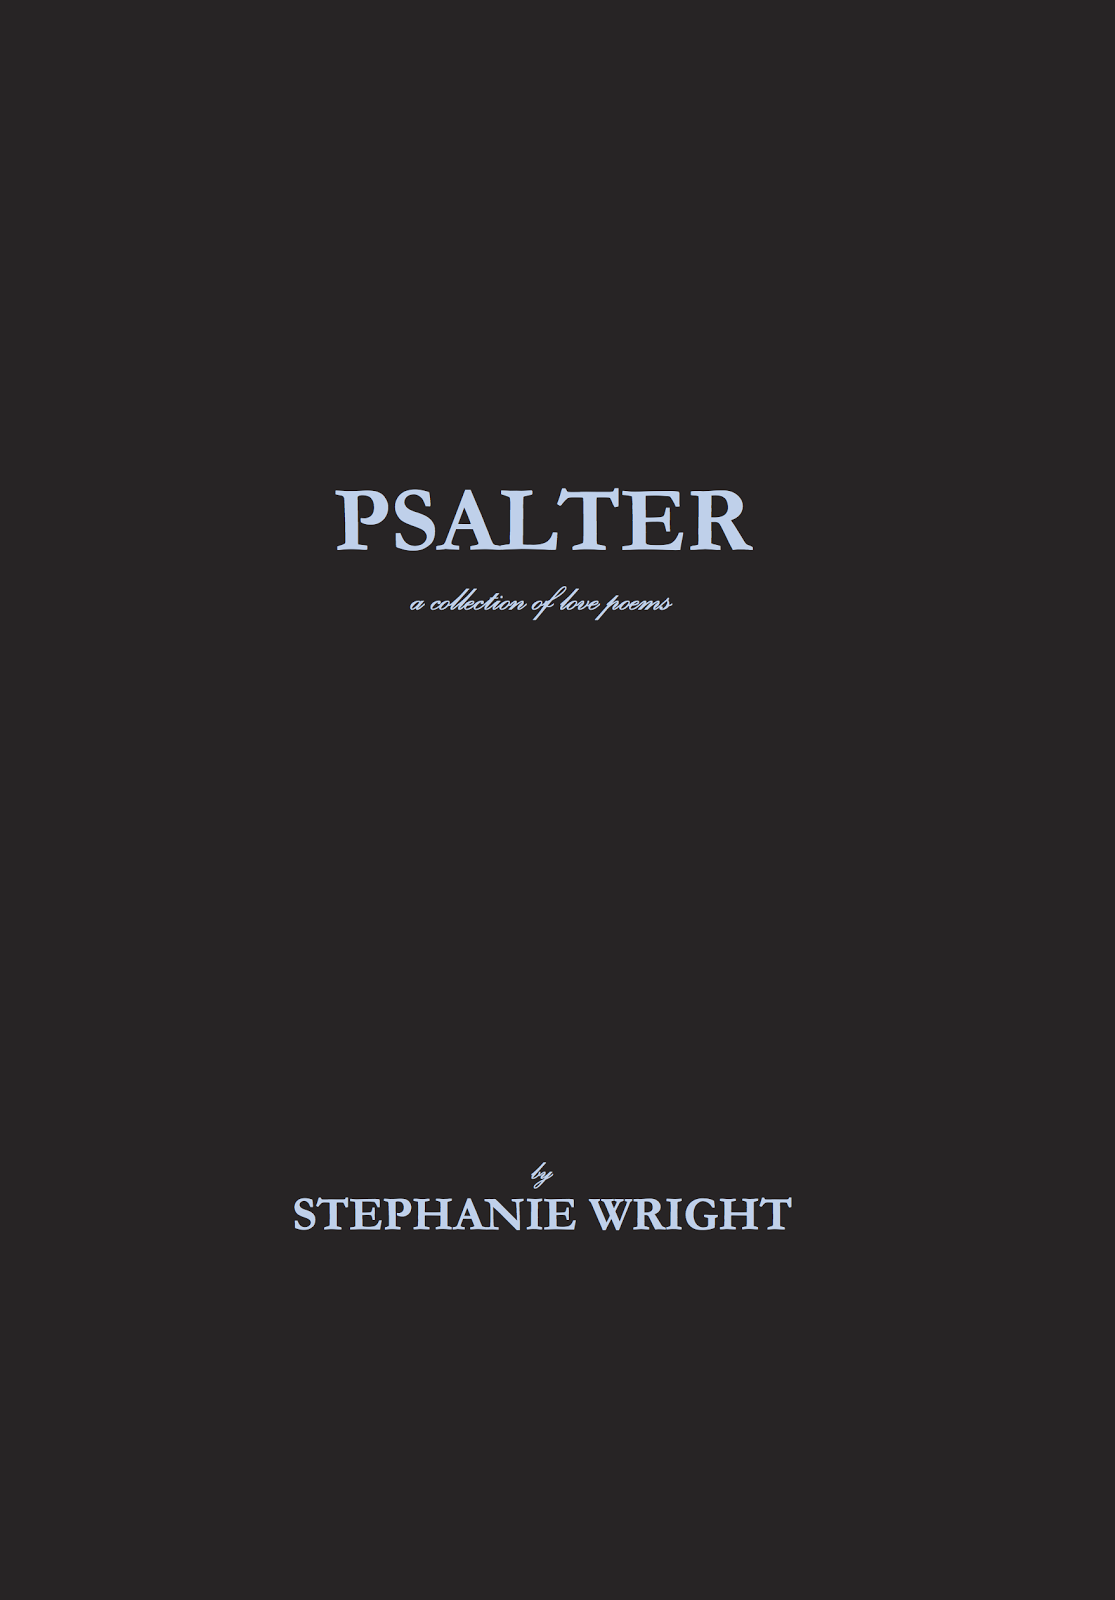 Psalter: a collection of love poems